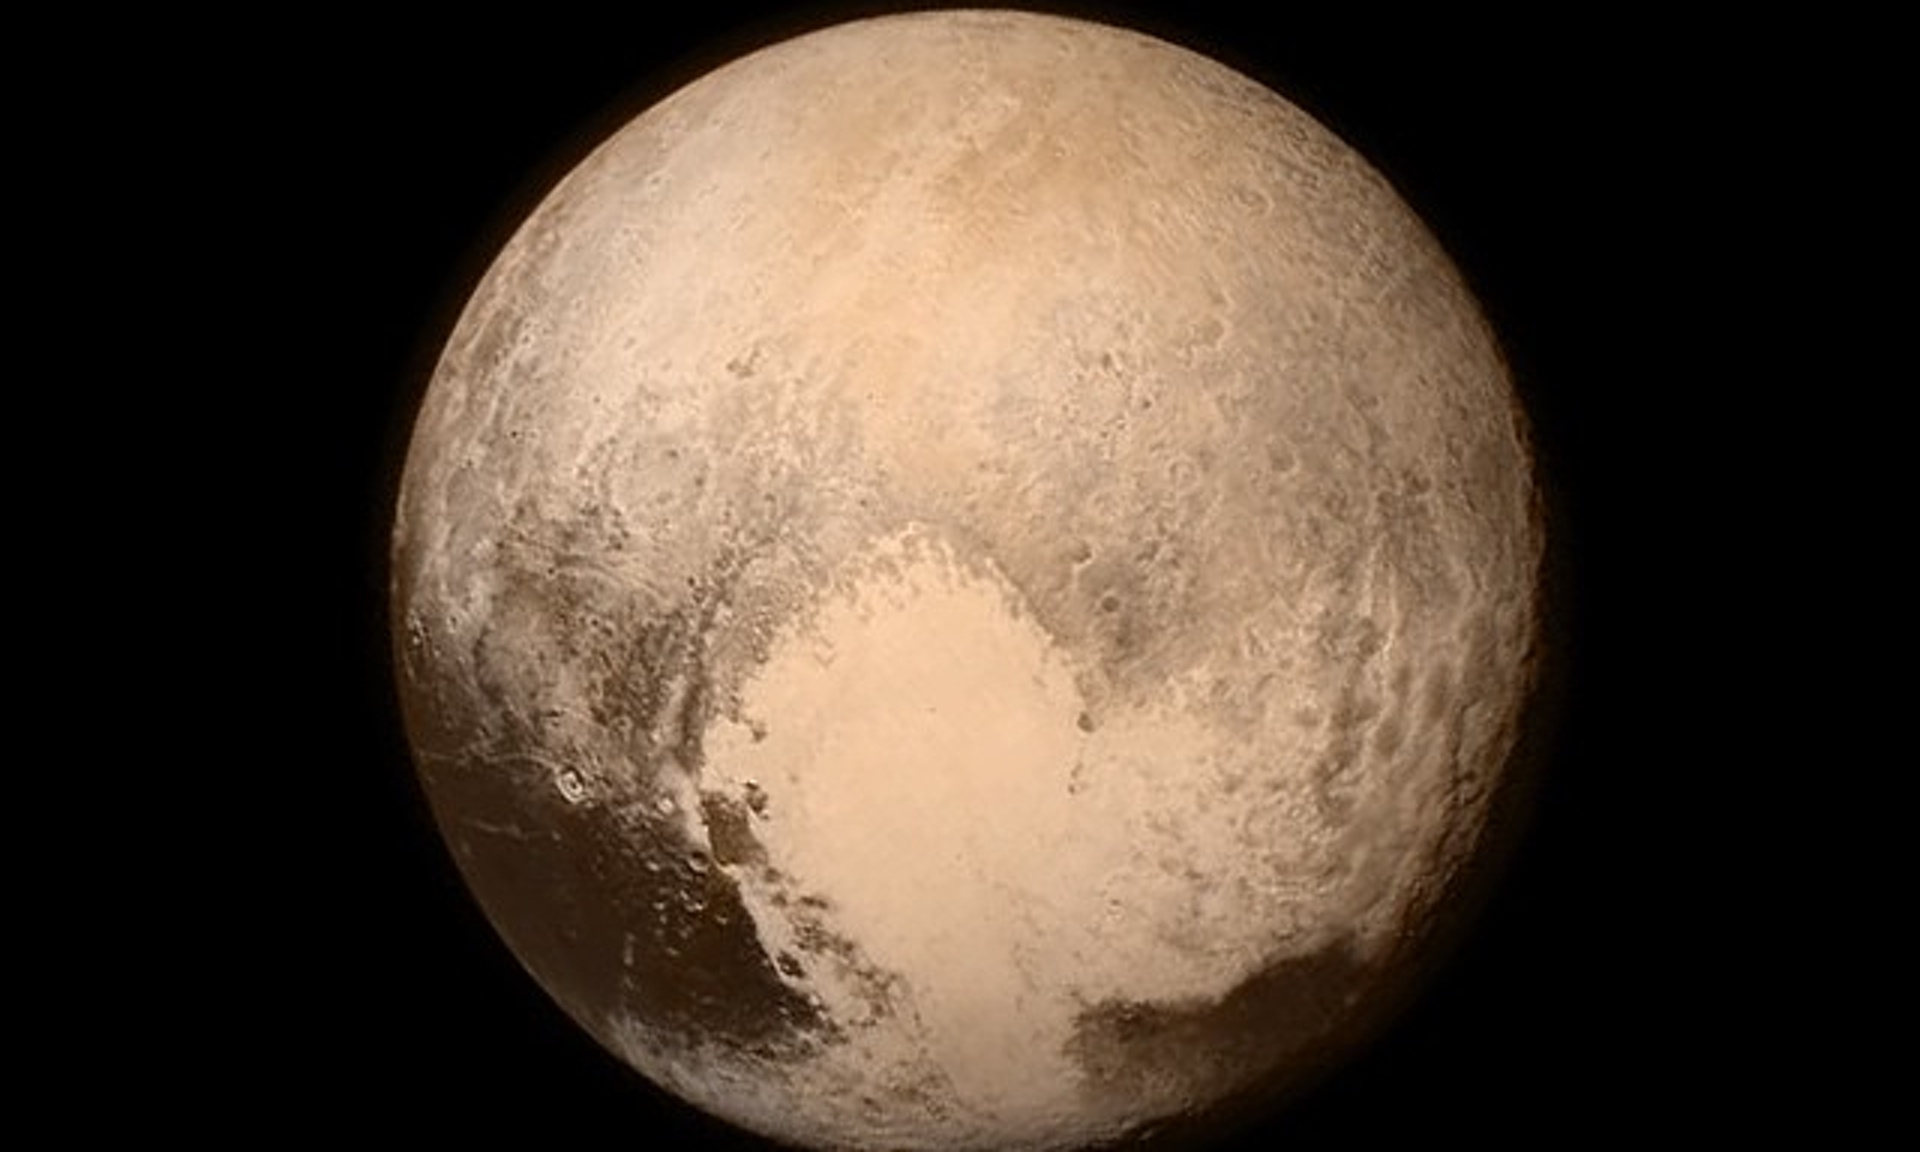 Pluto-New-Horizons-14Jul2015